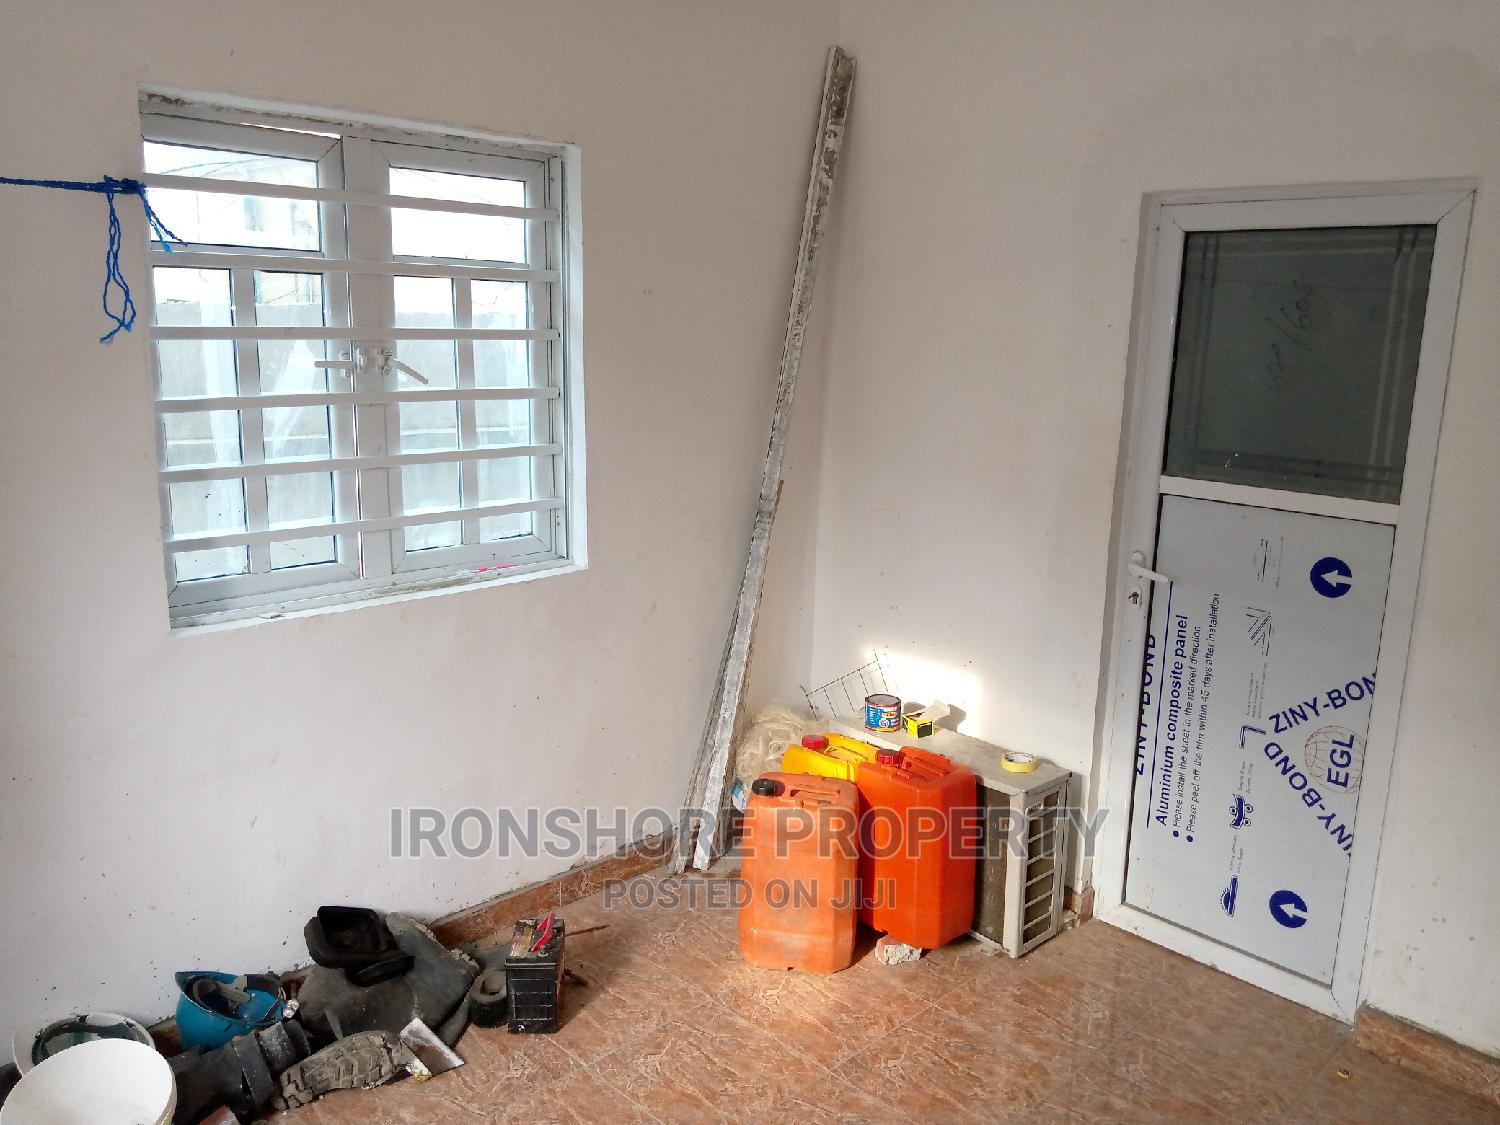 Brand New Room And Parlour For Rent | Houses & Apartments For Rent for sale in Lakowe, Ibeju, Nigeria